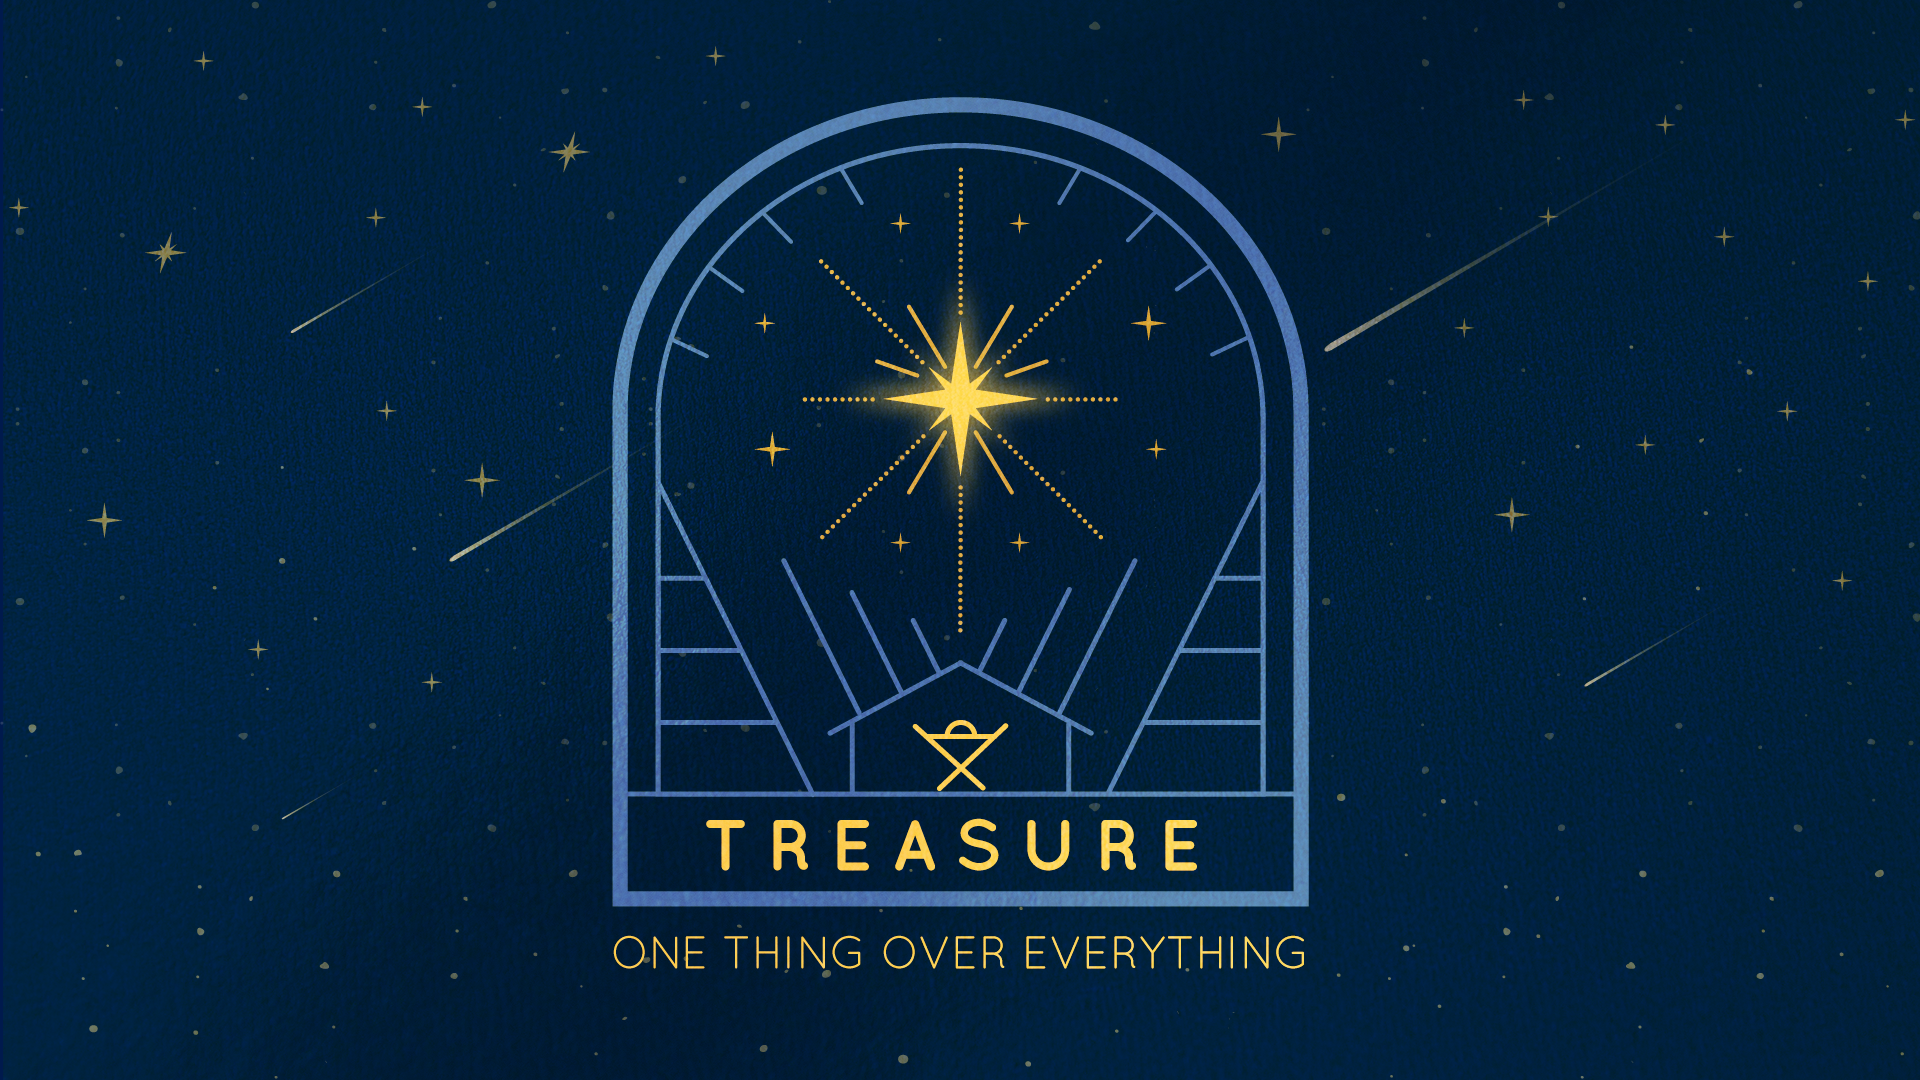 Treasure: One Thing Over Everything